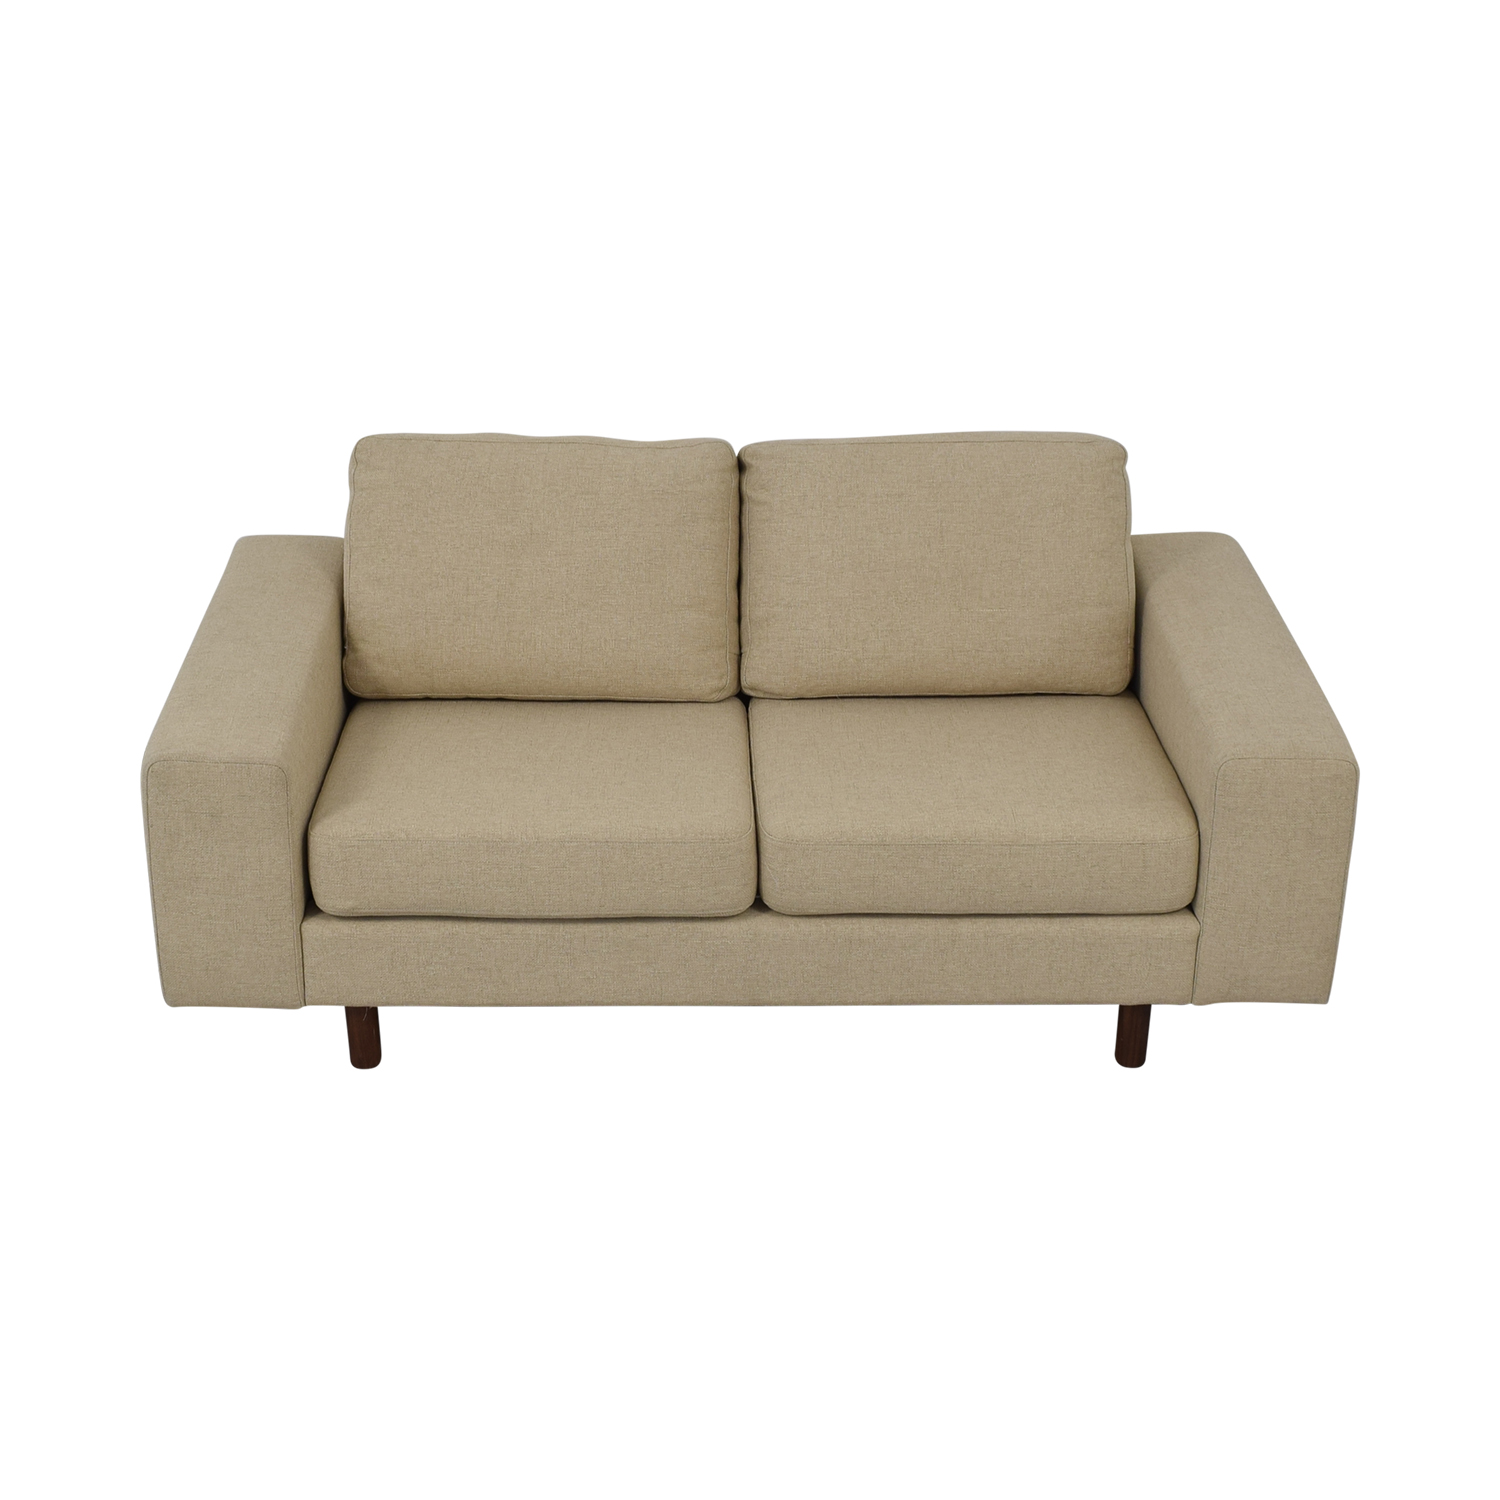 France and Son Platform Loveseat sale